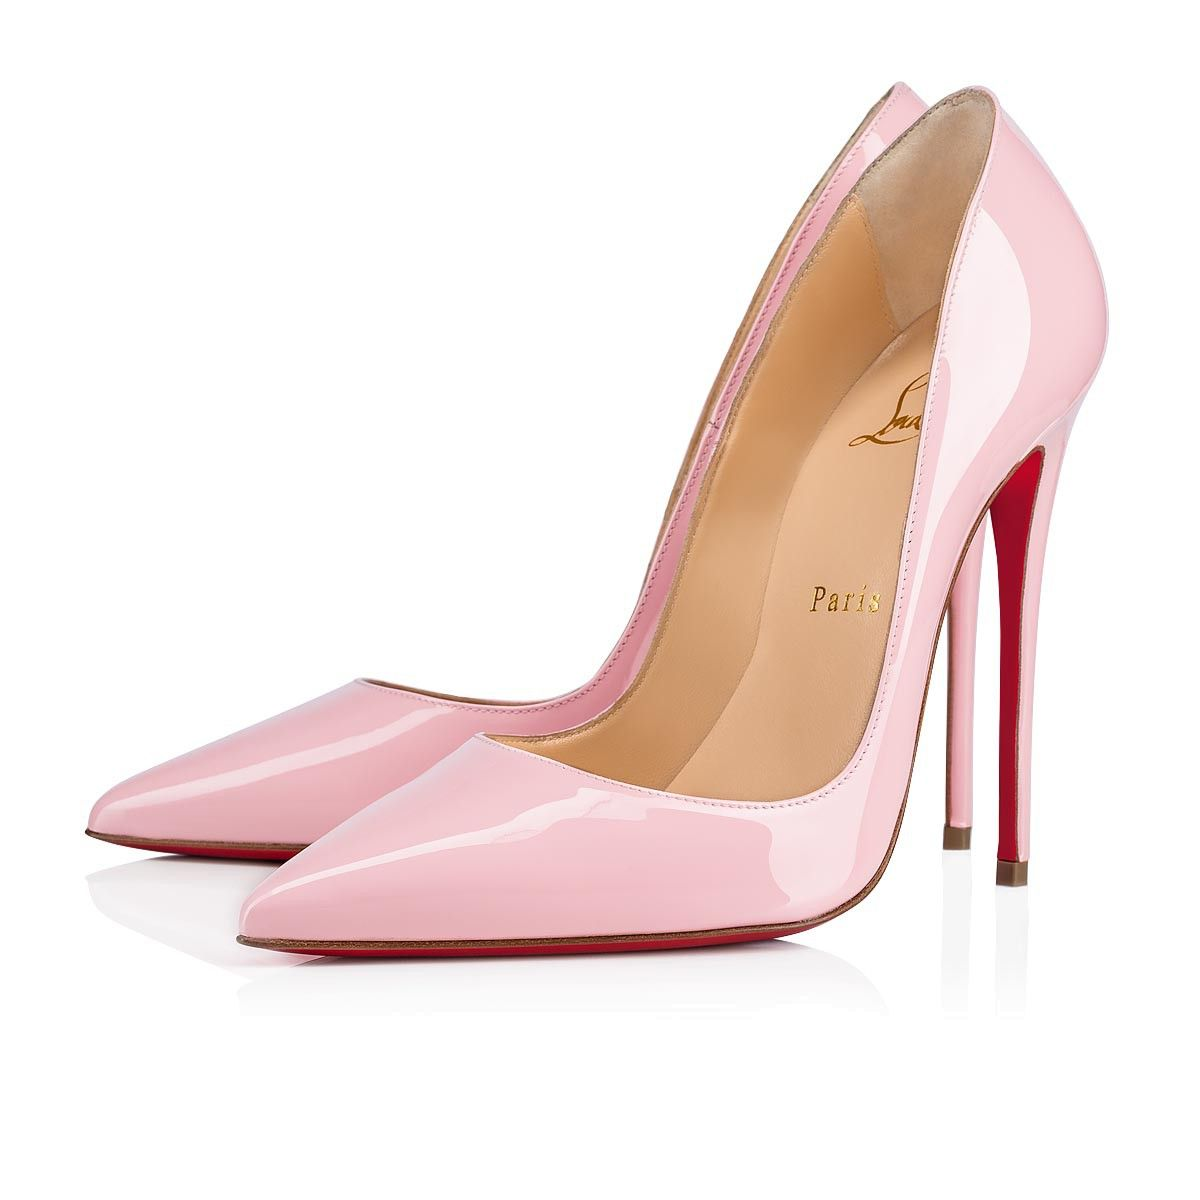 a5a233caf So Kate 120 Eglantine Patent Leather - Women Shoes - Christian Louboutin